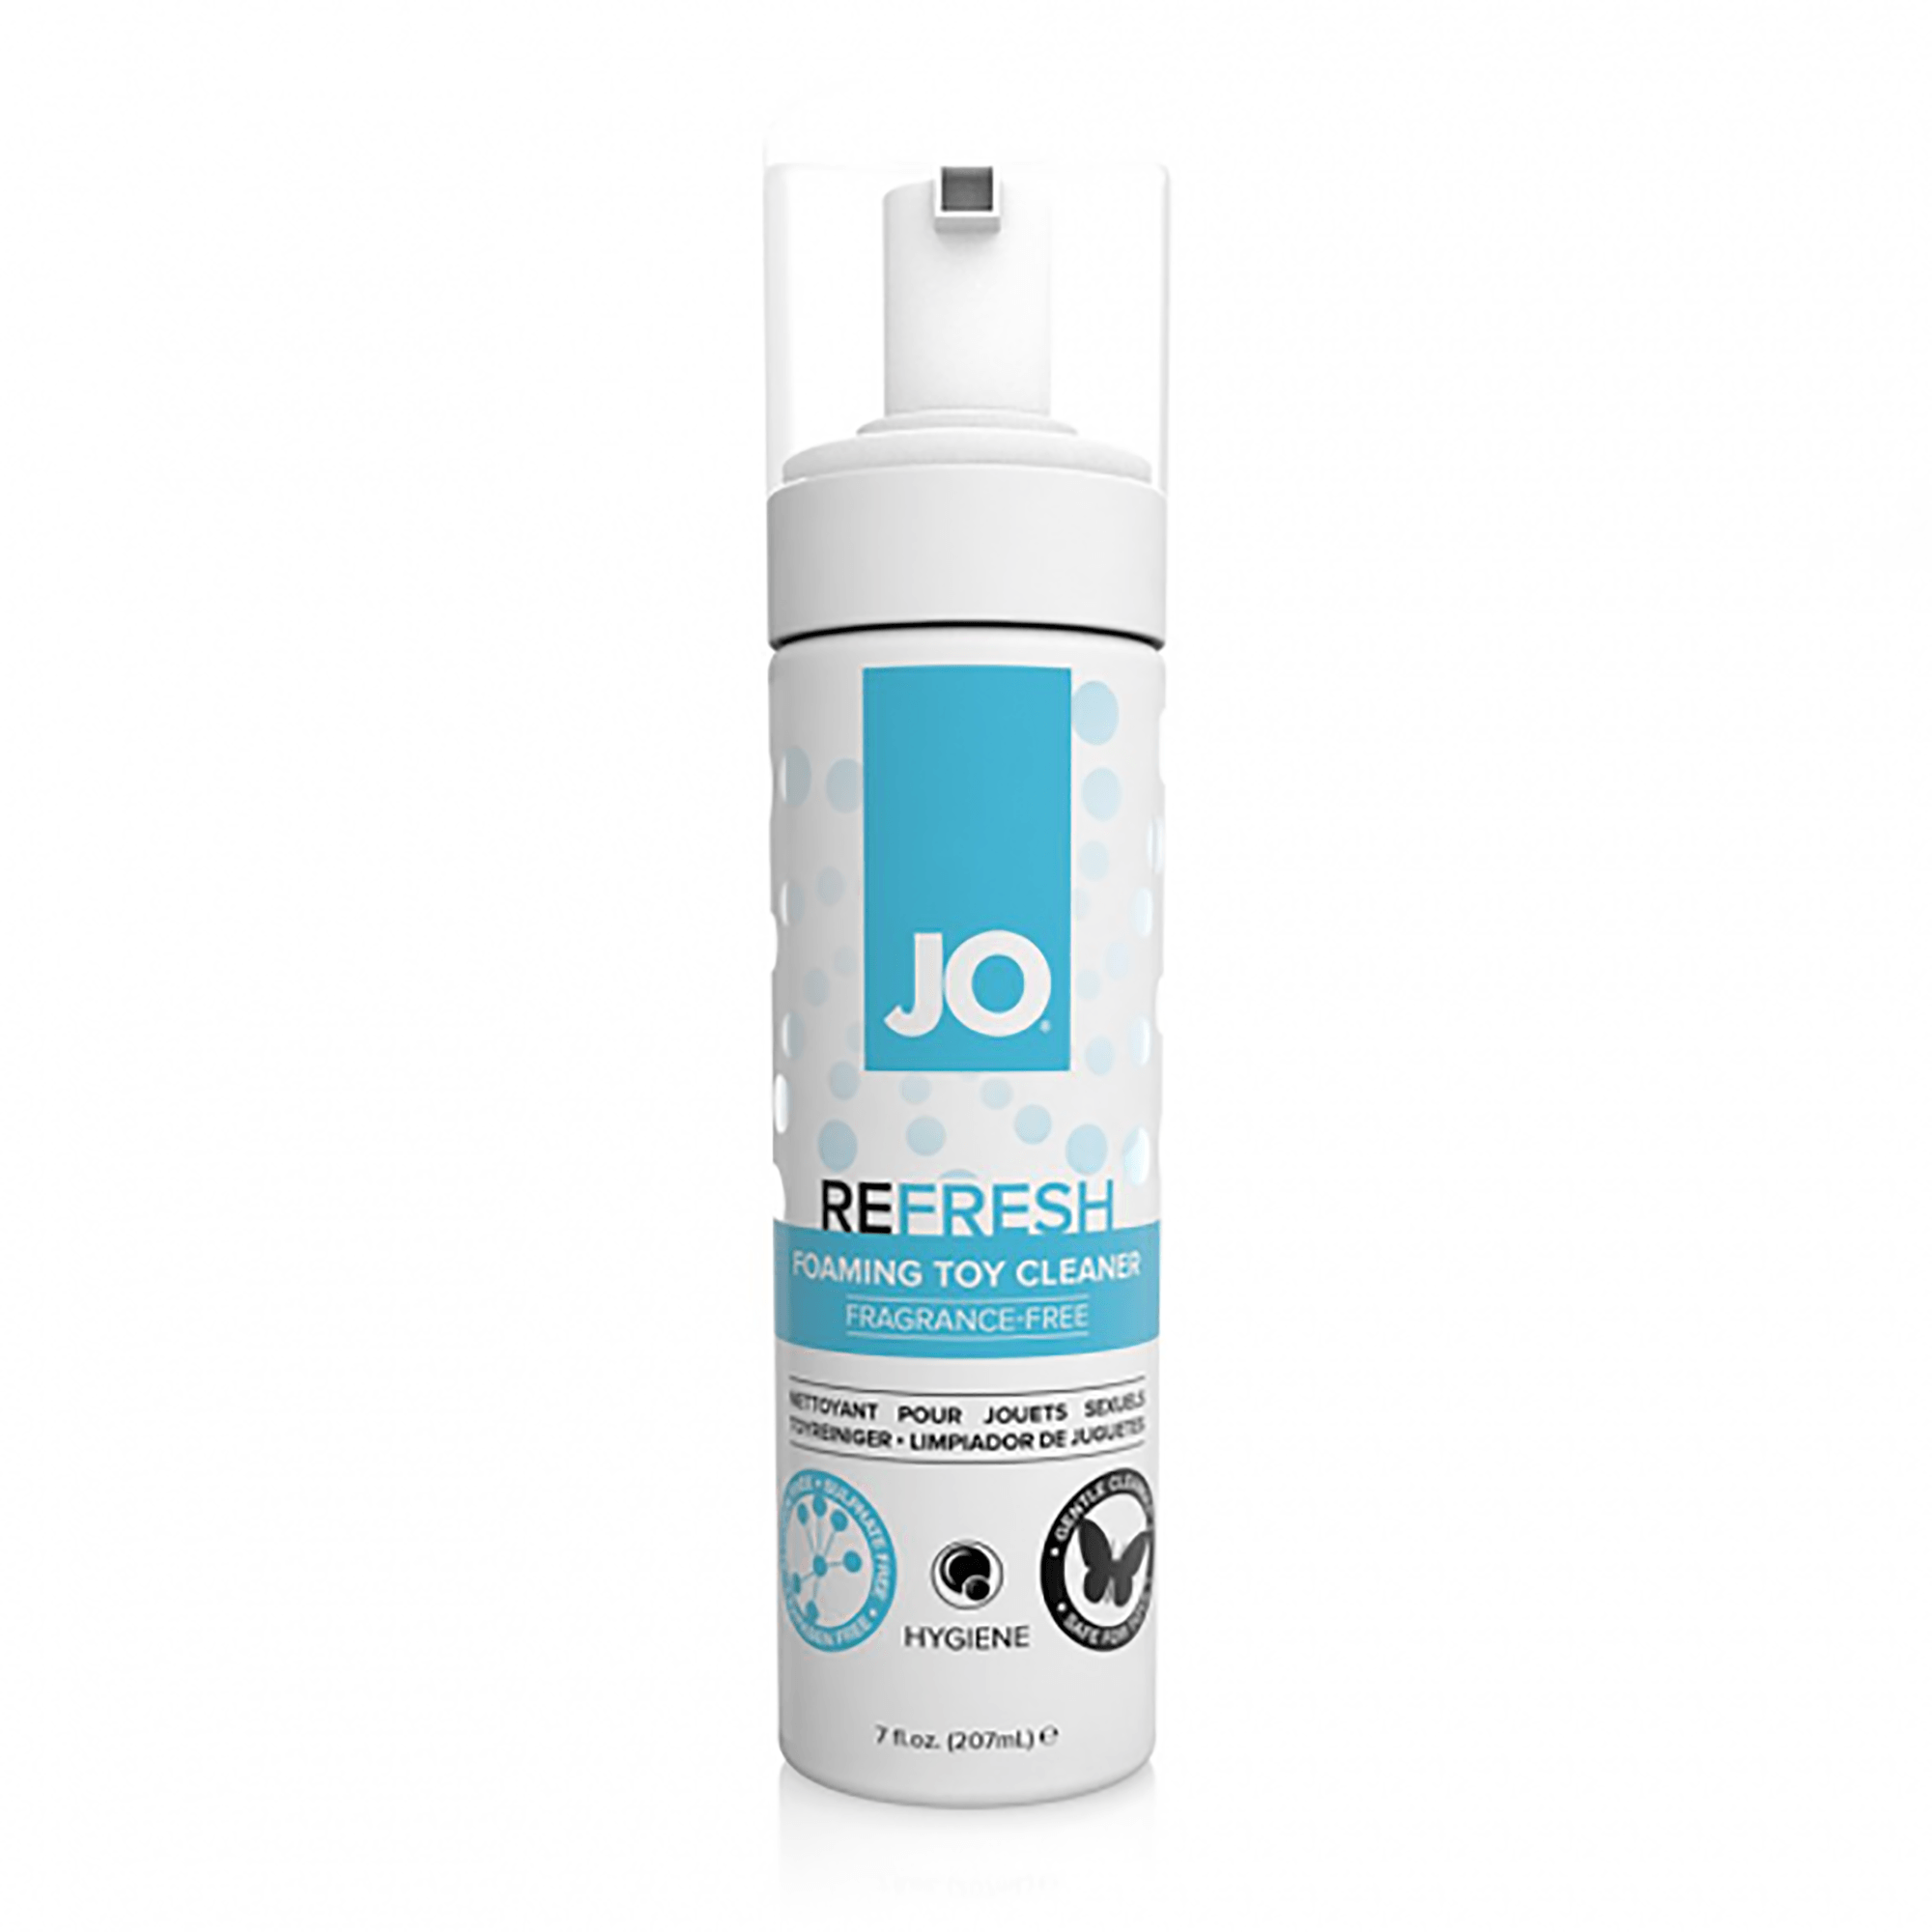 System JO Refresh Foaming Toy Cleaner 7 fl.oz. (207 mL) - The Cowgirl Shop